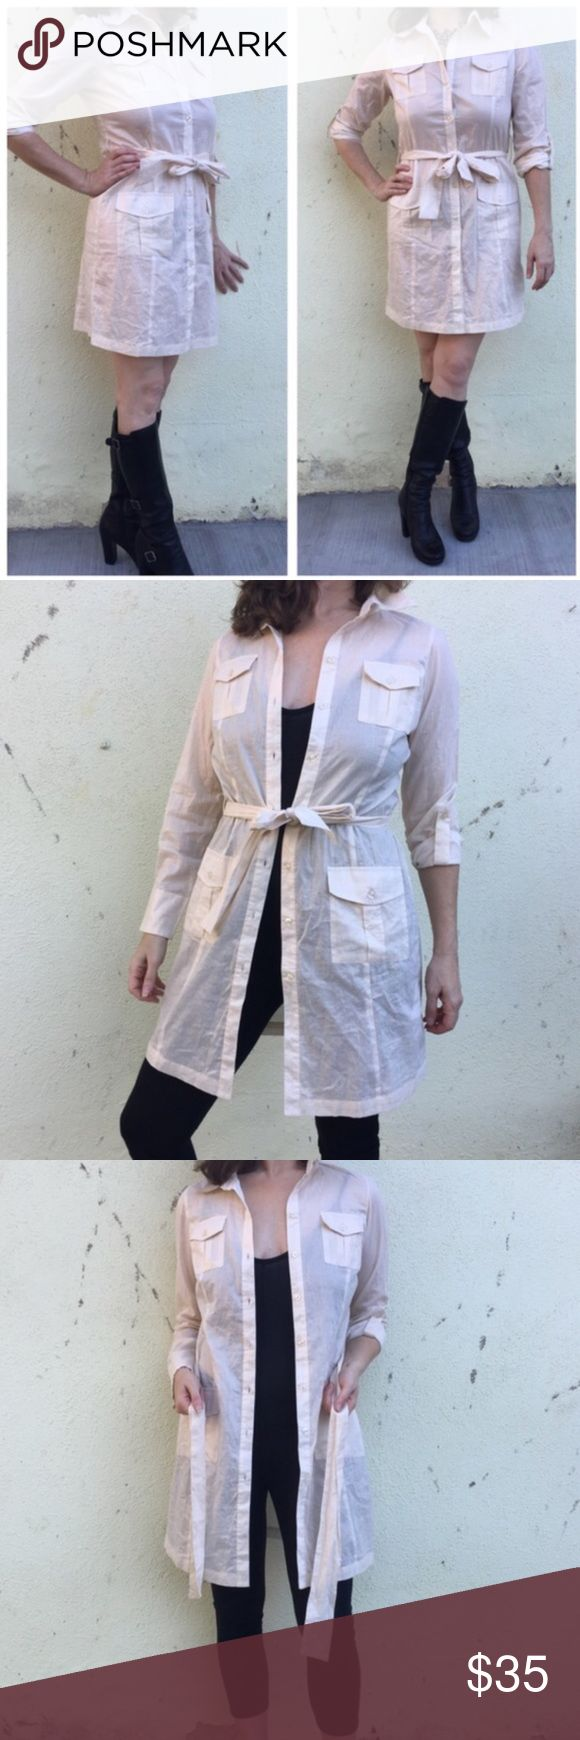 BCBG Cotton OVER SHIRT DRESS JACKET tie Long M Off white/cream long over - shirt (light jacket) for layering and style. by BCBG MAXAZRIA. Can also be worn as an dress With matching unattached sash. 100% cotton. Light weight. Sz M. (J1) BCBGMaxAzria Jackets & Coats